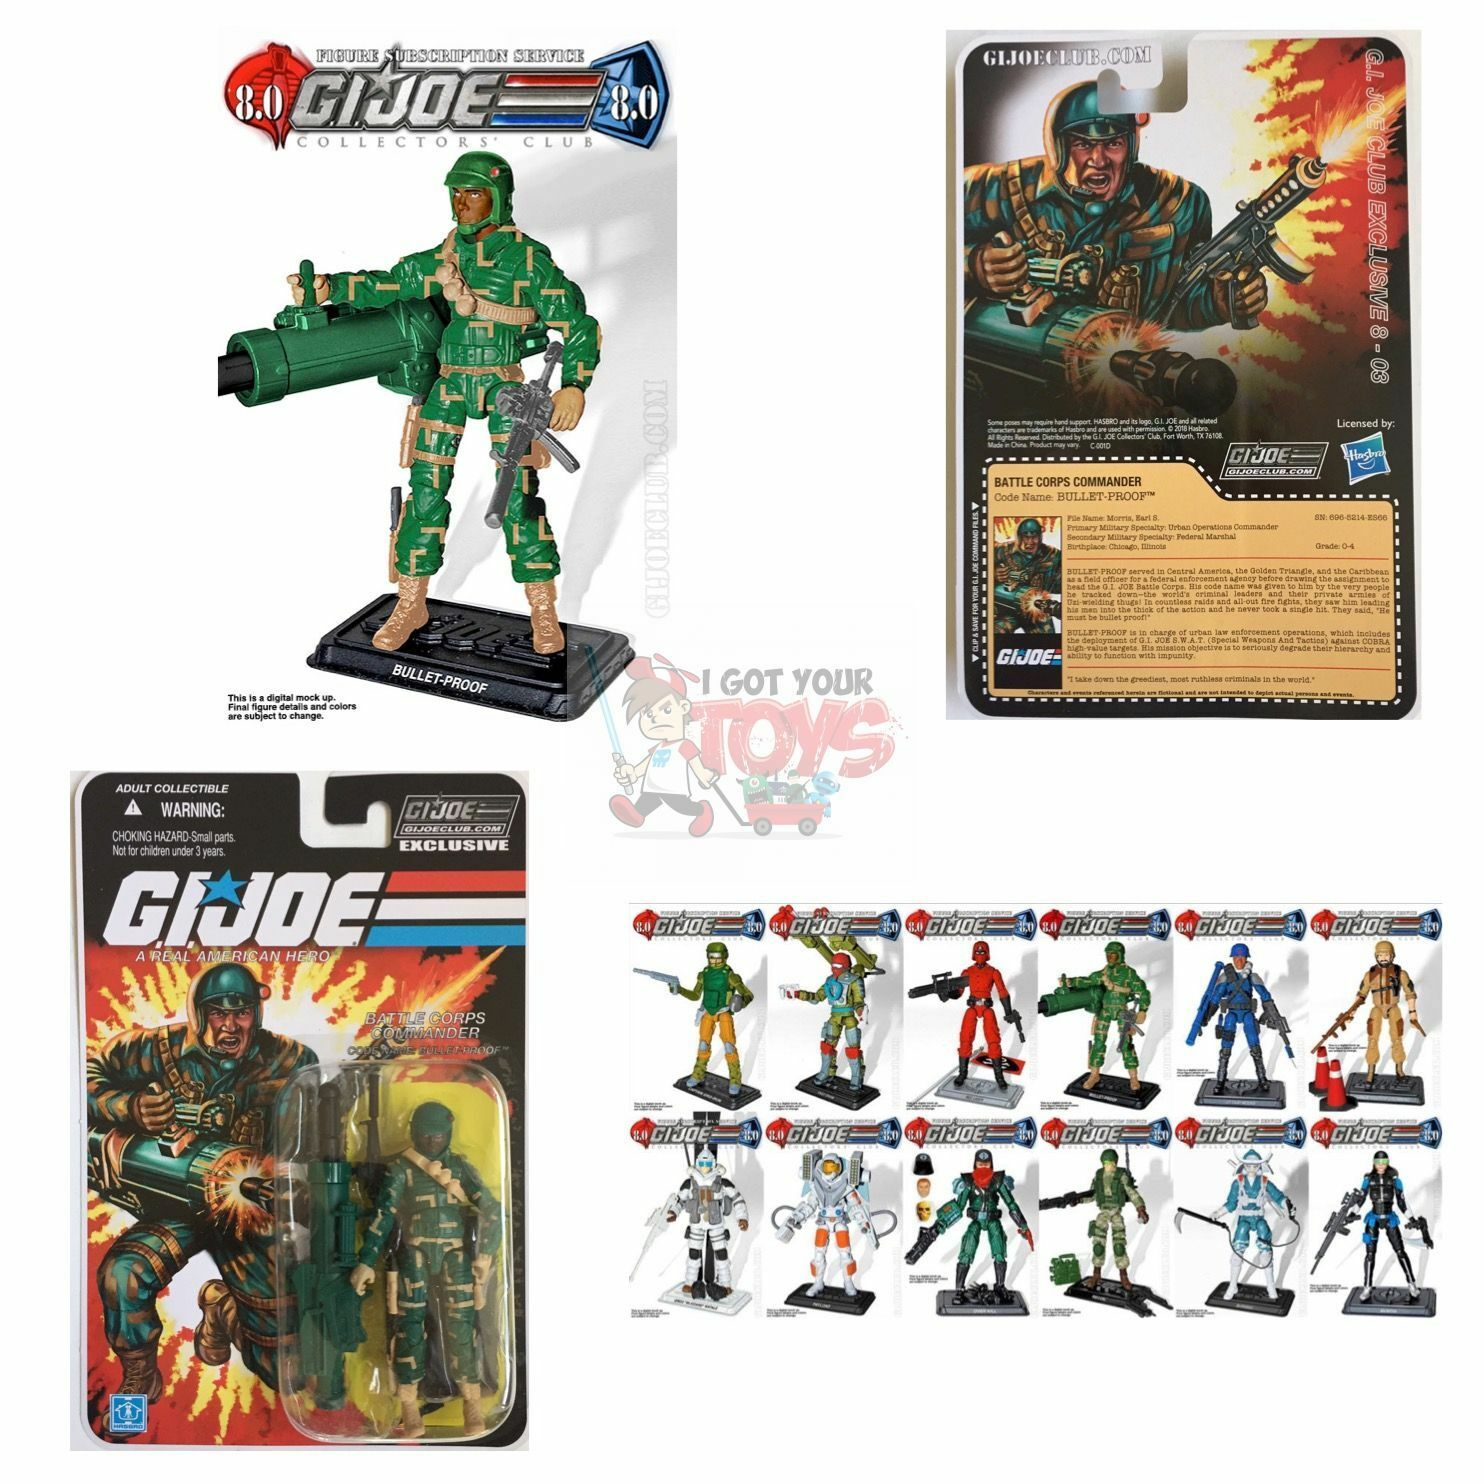 BULLET PROOF (BATTLE CORPS) FSS 8.0 GI JOE Club 3.75  Inch 2018 EXCLUSIVE FIGURE